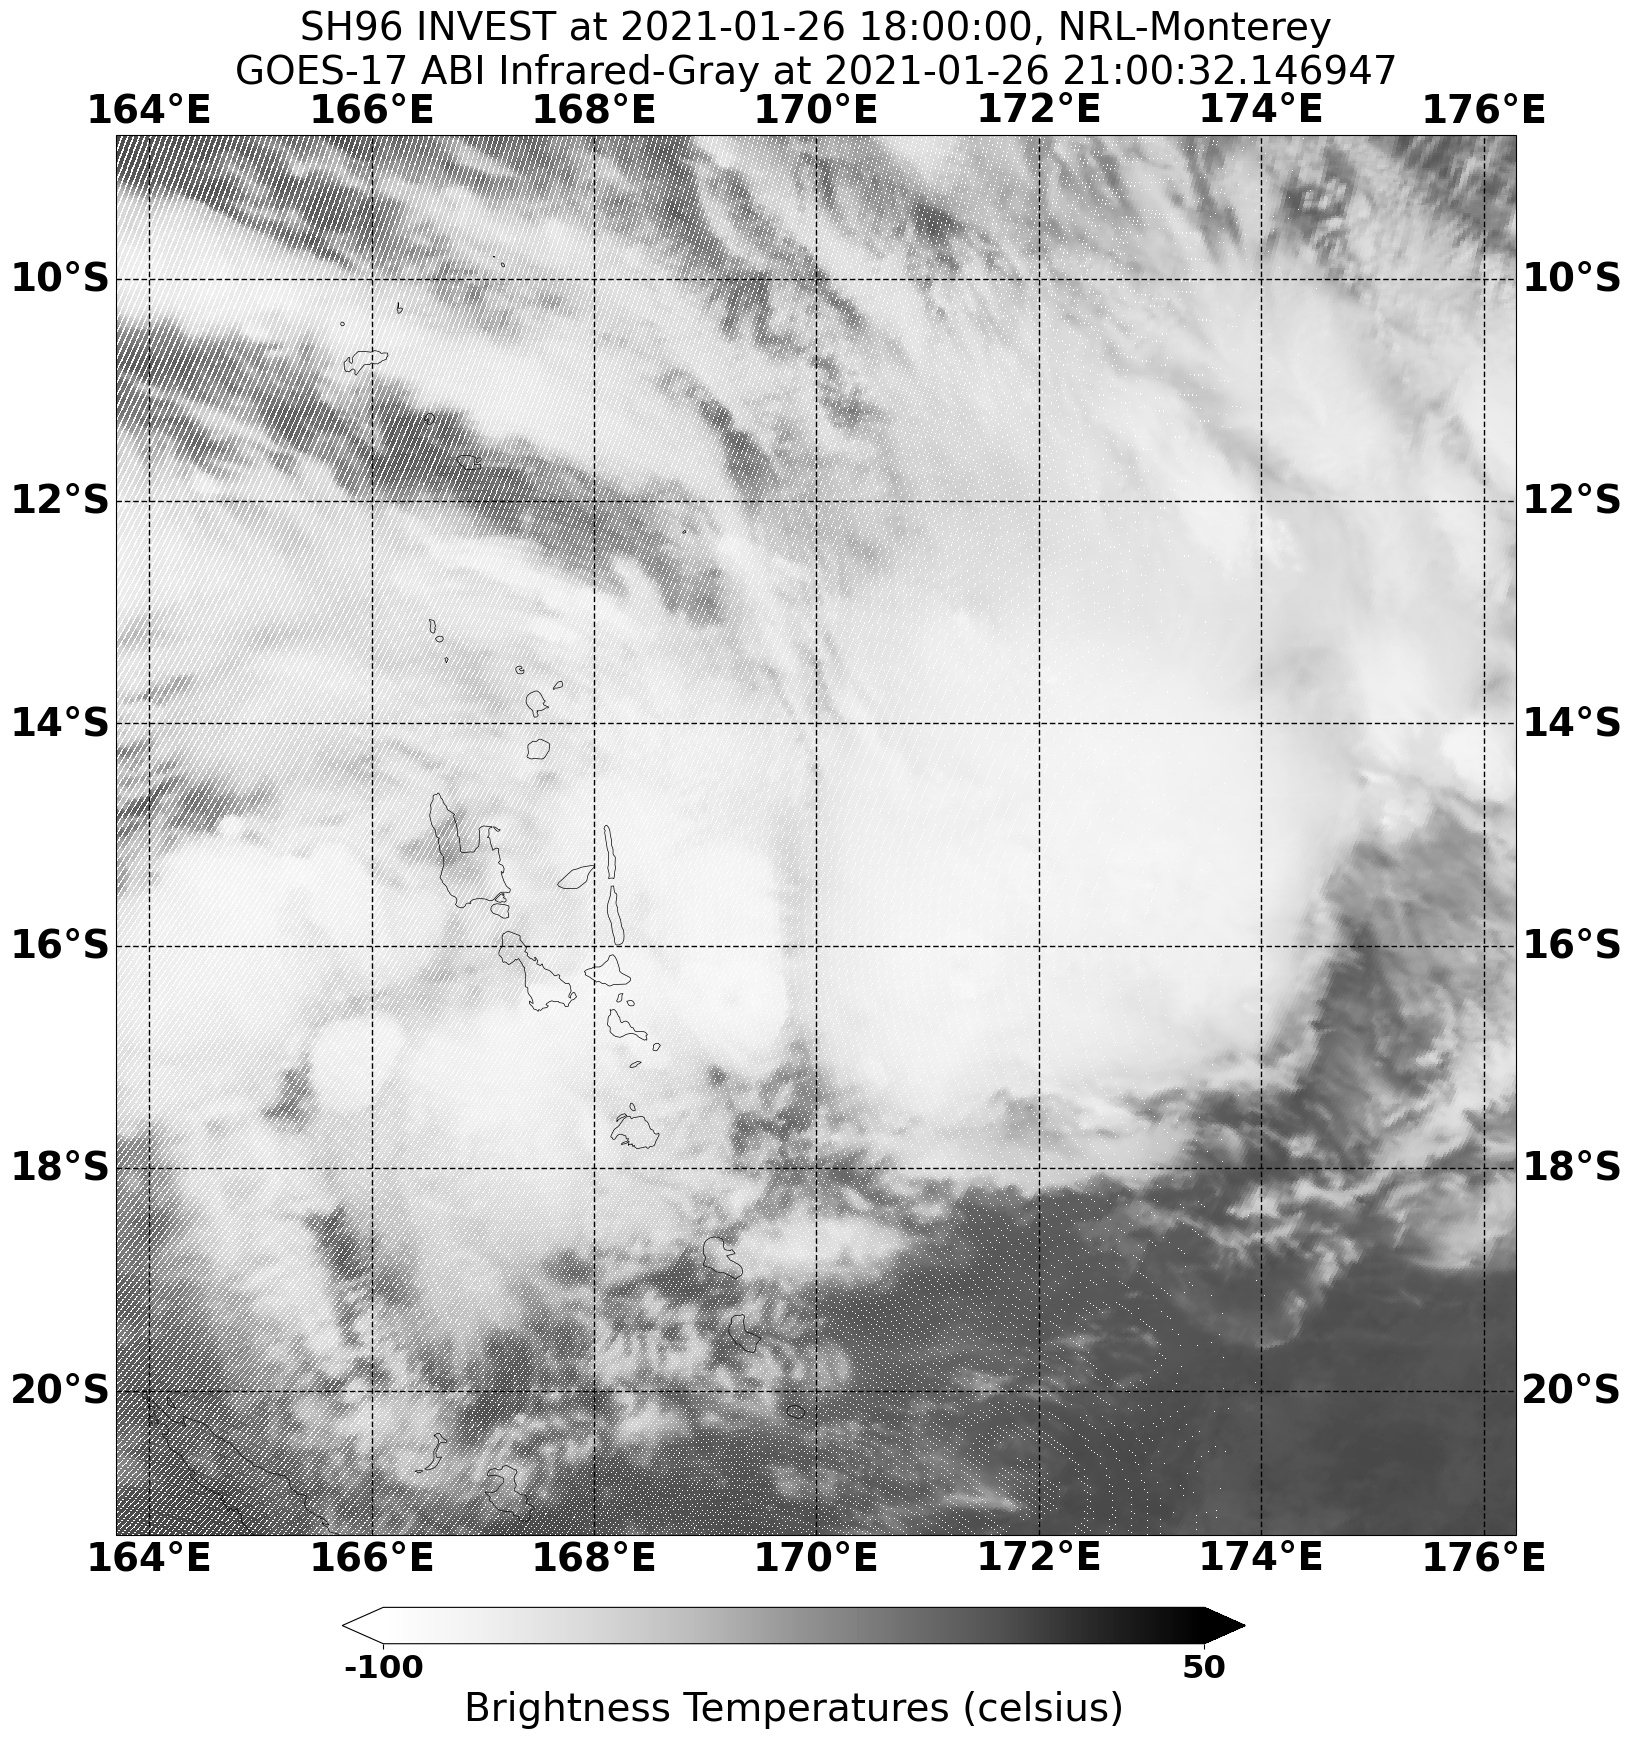 20210126.210032.SH962021.abi.goes-17.Infrared-Gray.20kts.91p4.1p0.jpg